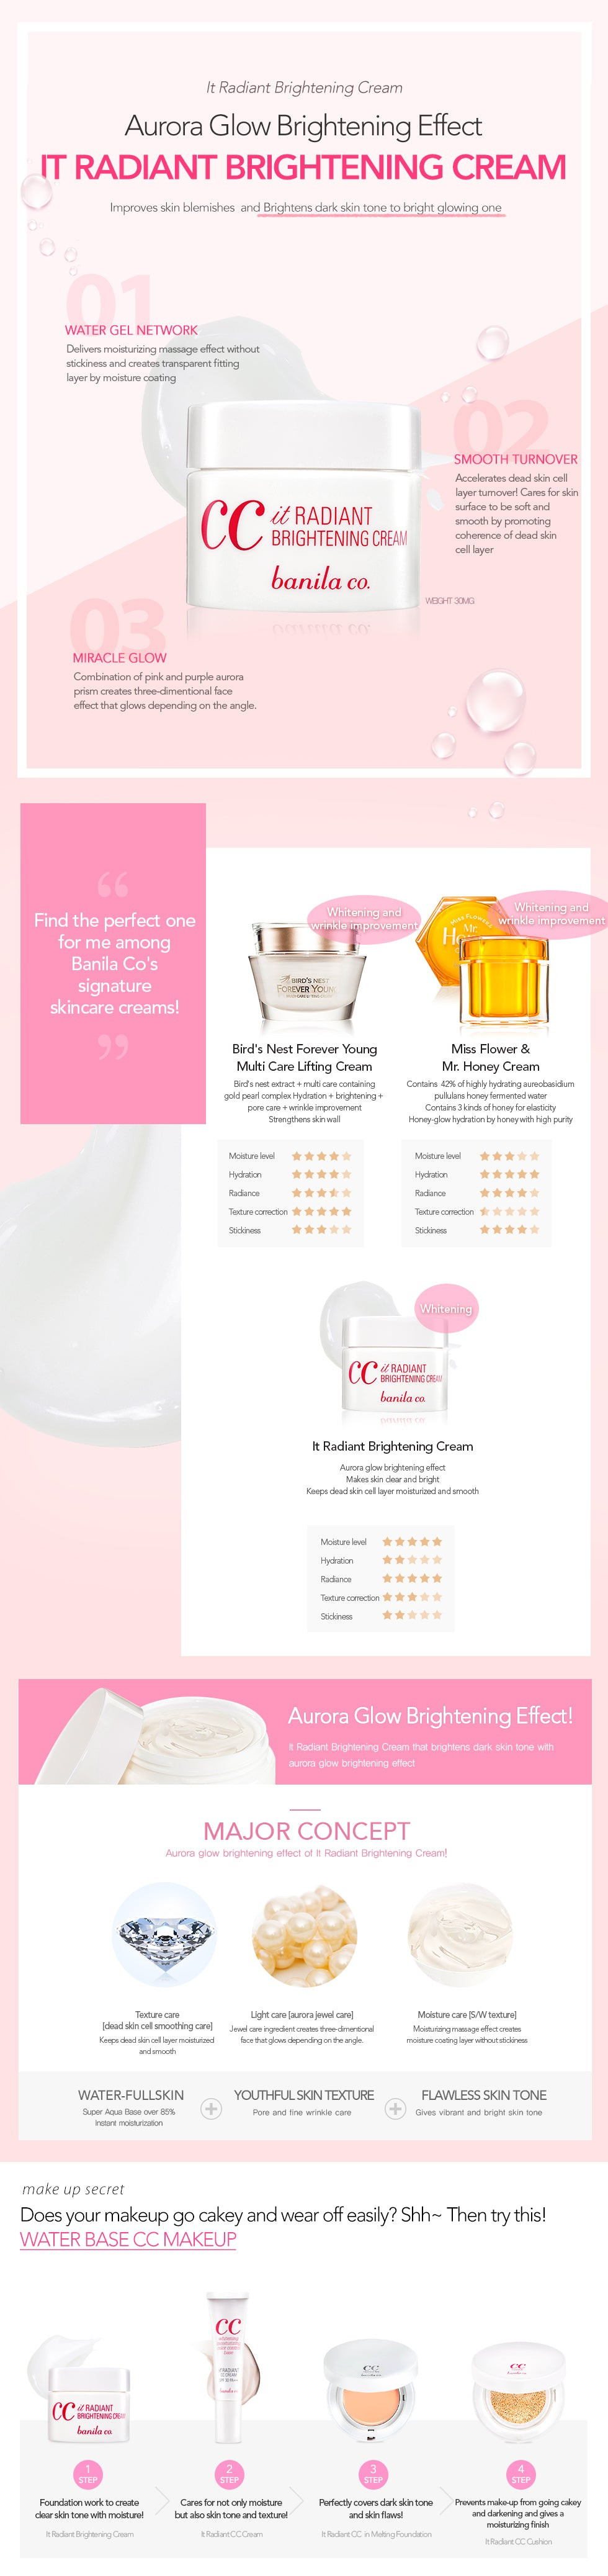 Banila Co - It Radiant Brightening Cream